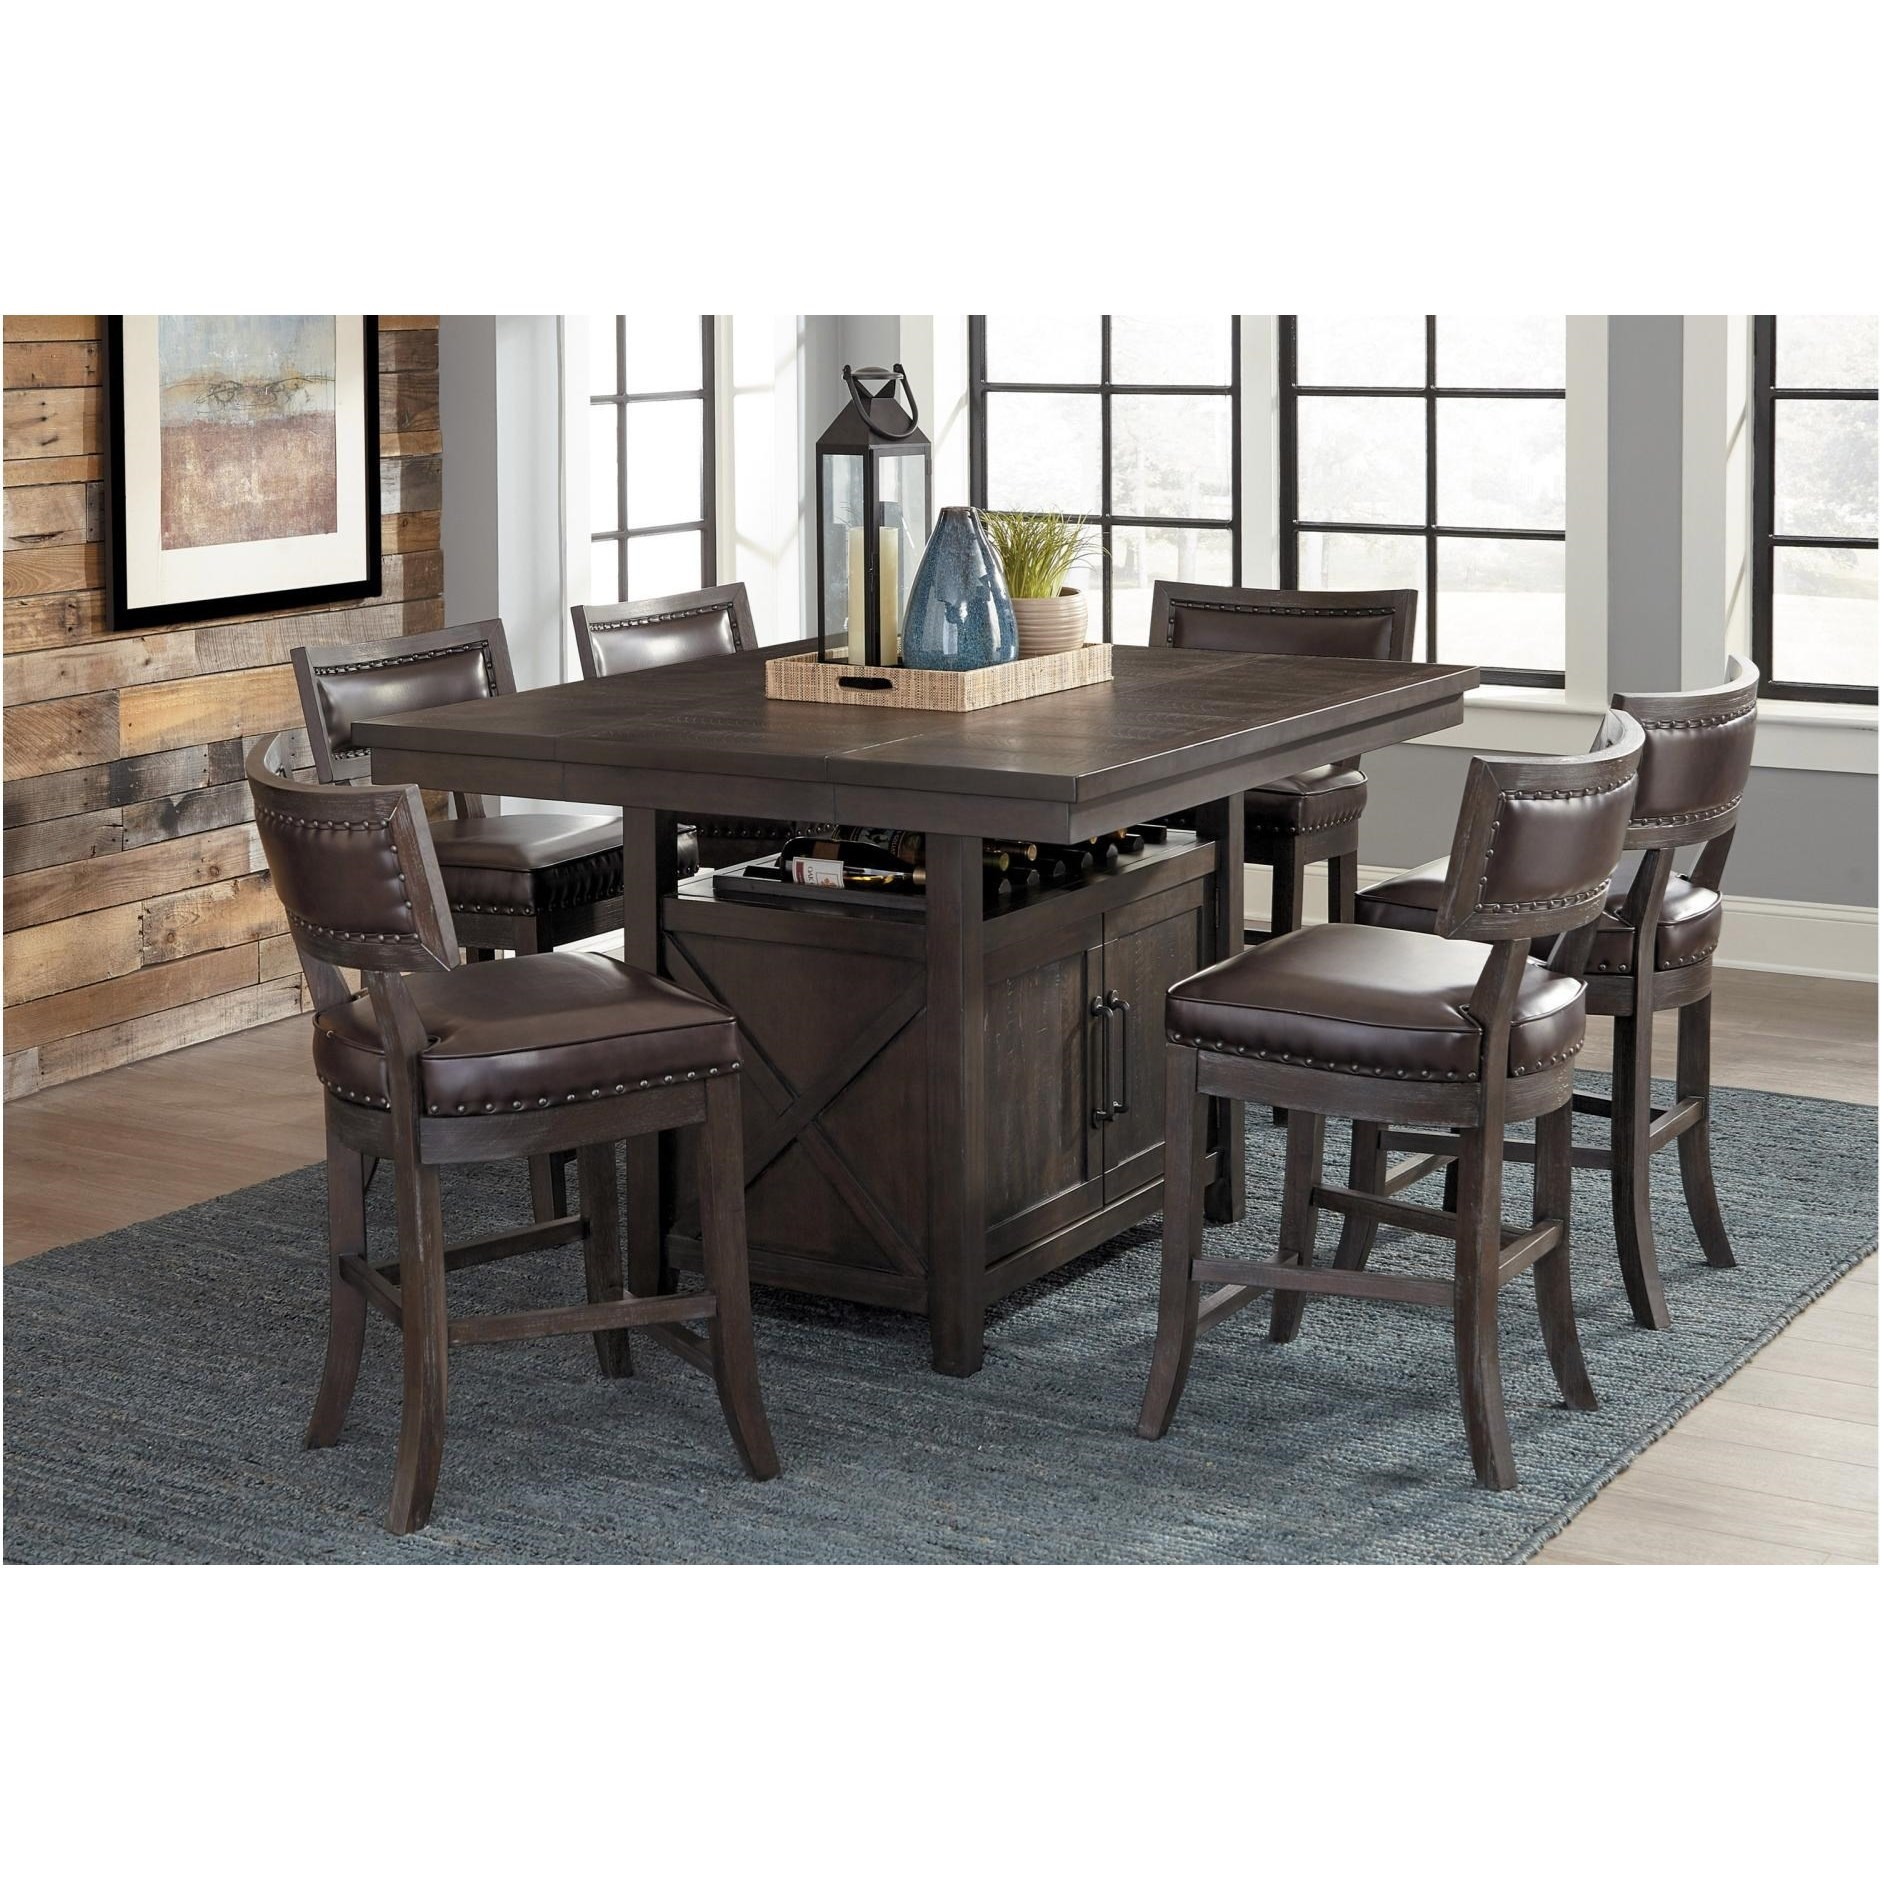 Homelegance Oxton Counter Height Table Set for 9   Value City ...